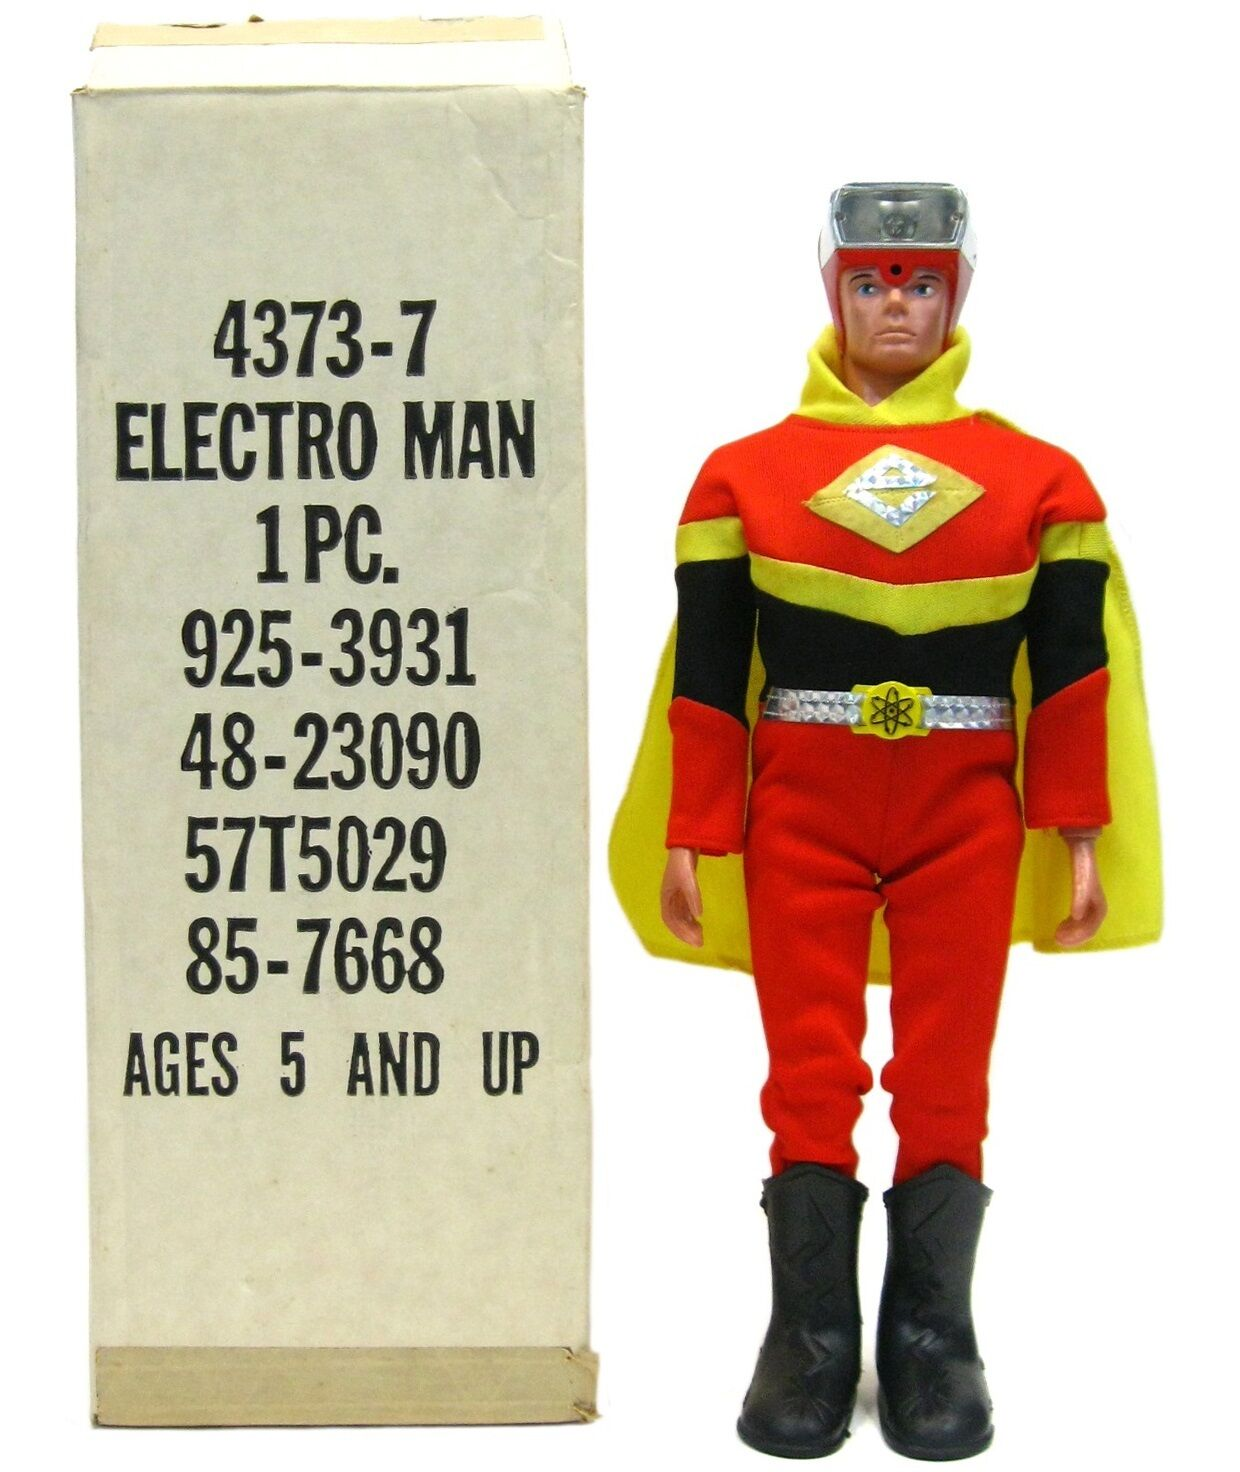 Vintage 1977 Ideal Electroman Robot Zogg Space Toy Mint w Mailer Box MIB Works